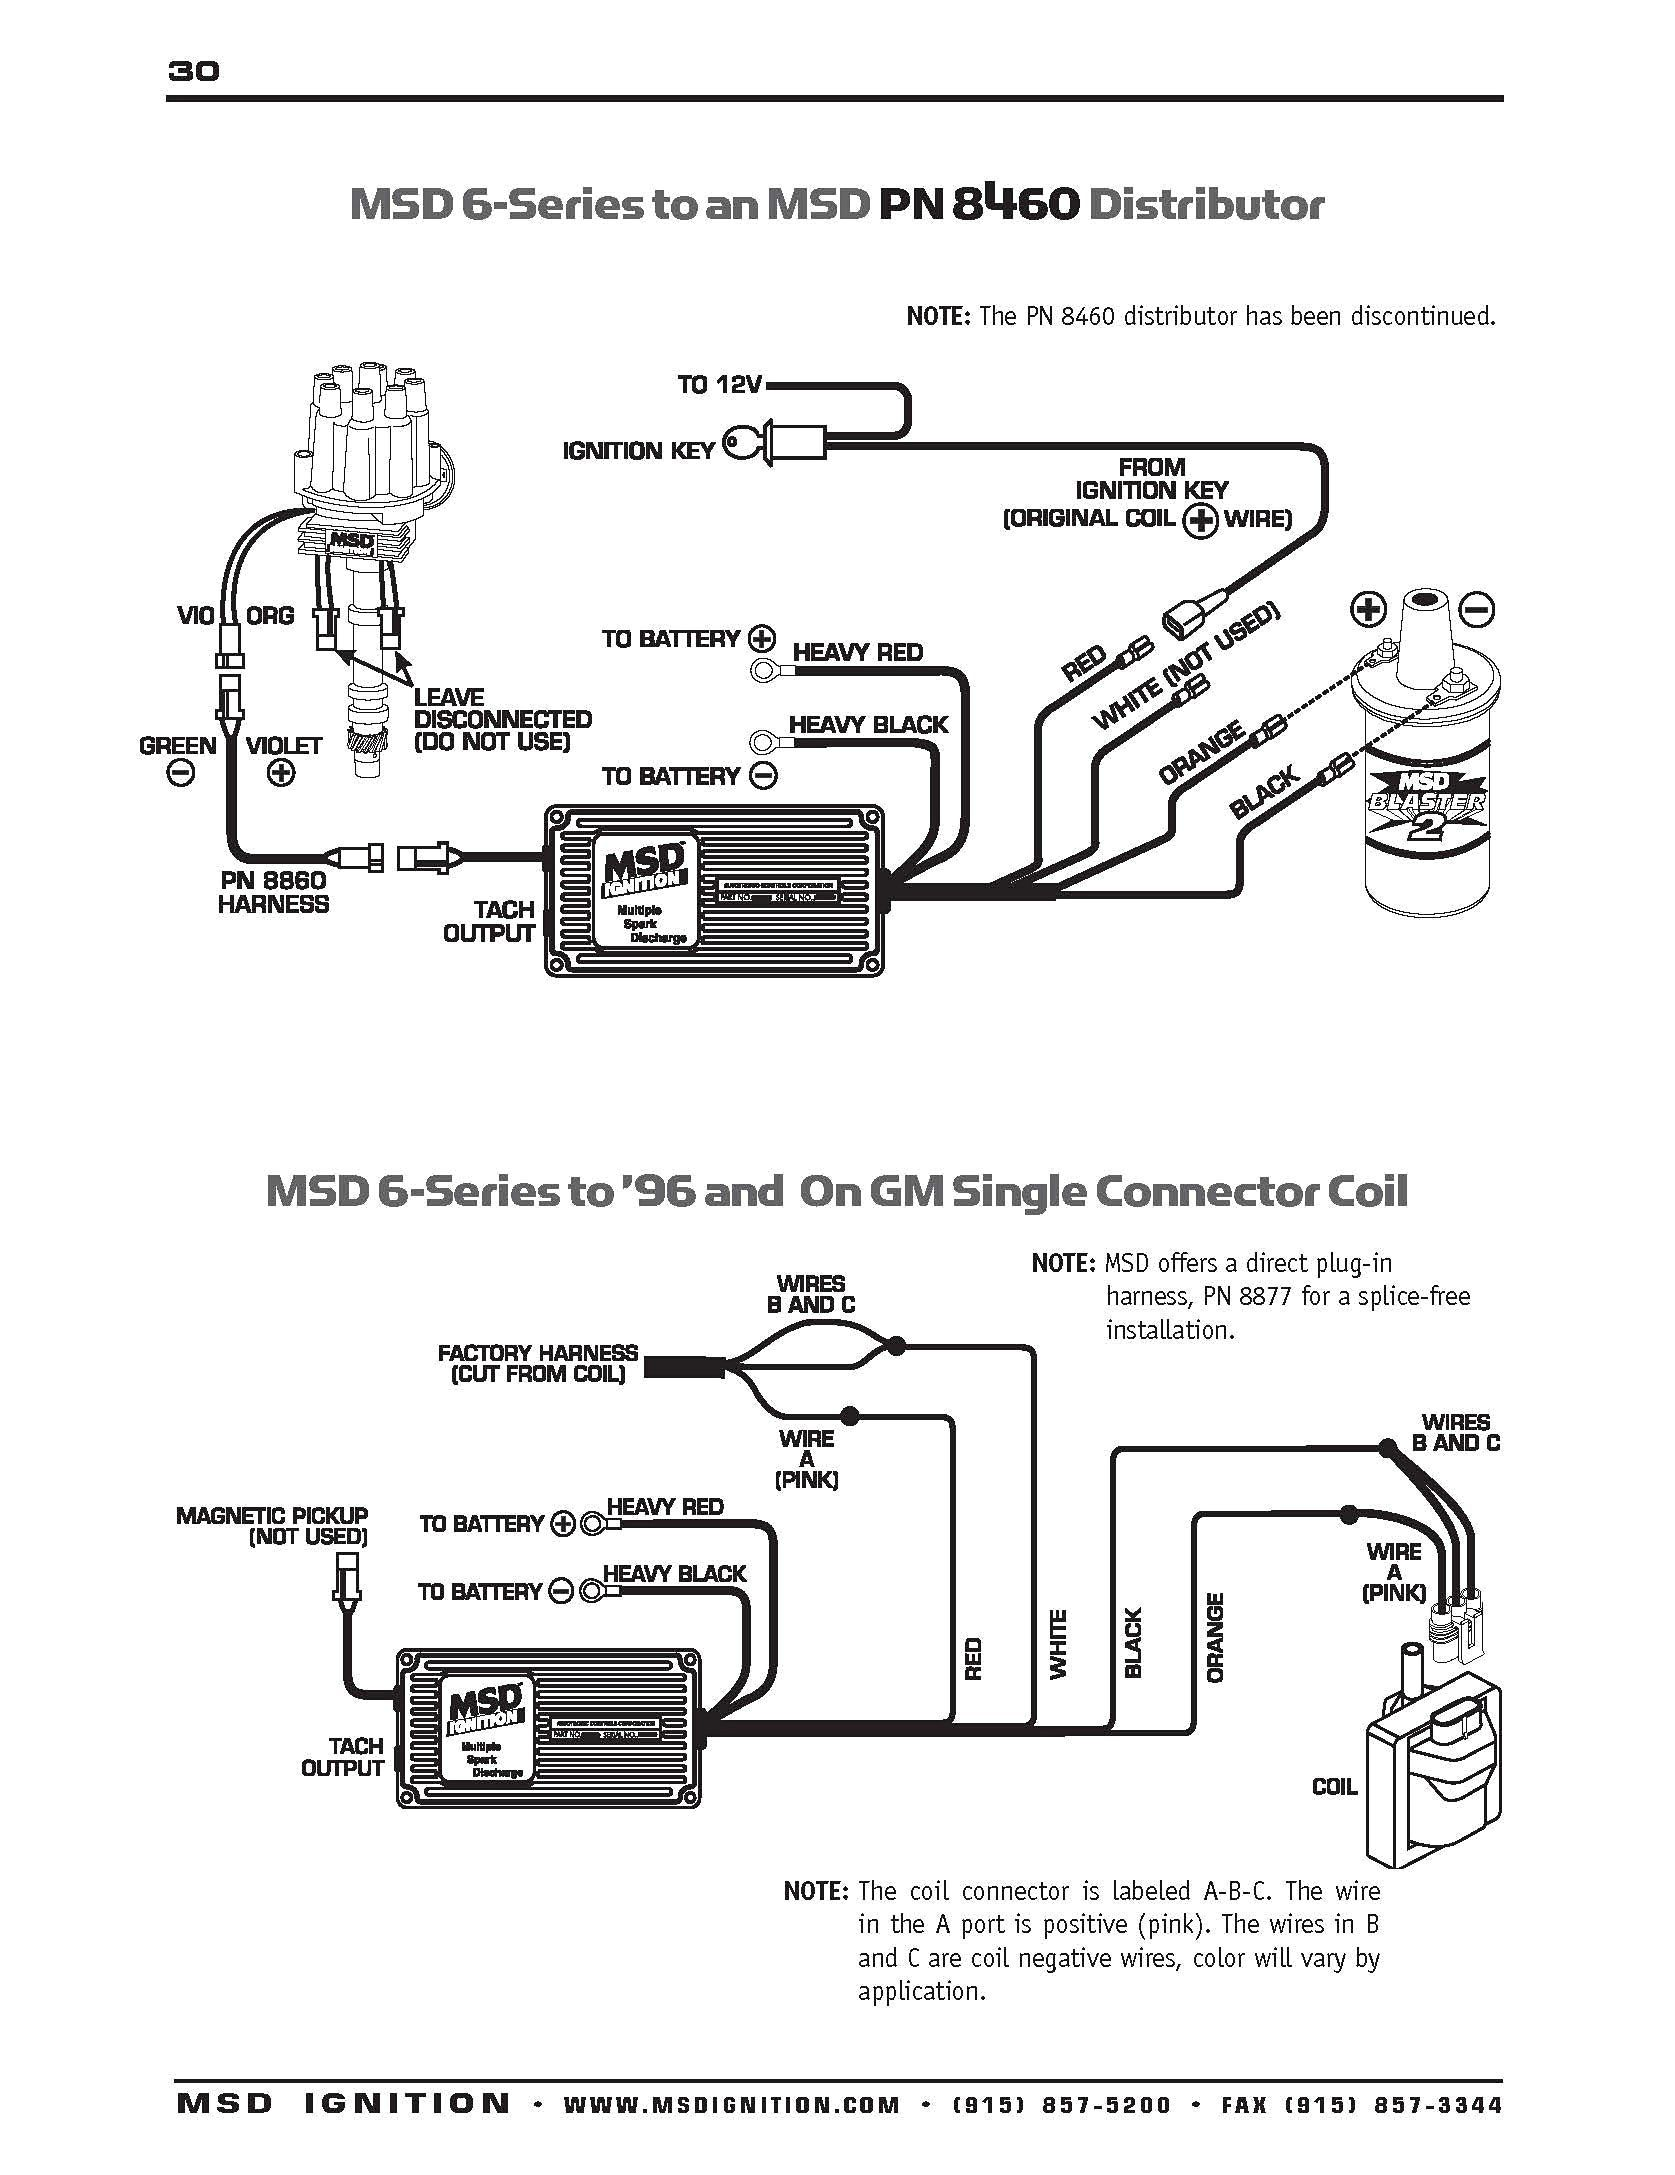 Hei Wiring Diagram Earch For Accel Distributor Hd Dump In Accel Distributor Wiring Diagram 6390 Ignition Coil Msd Diagram